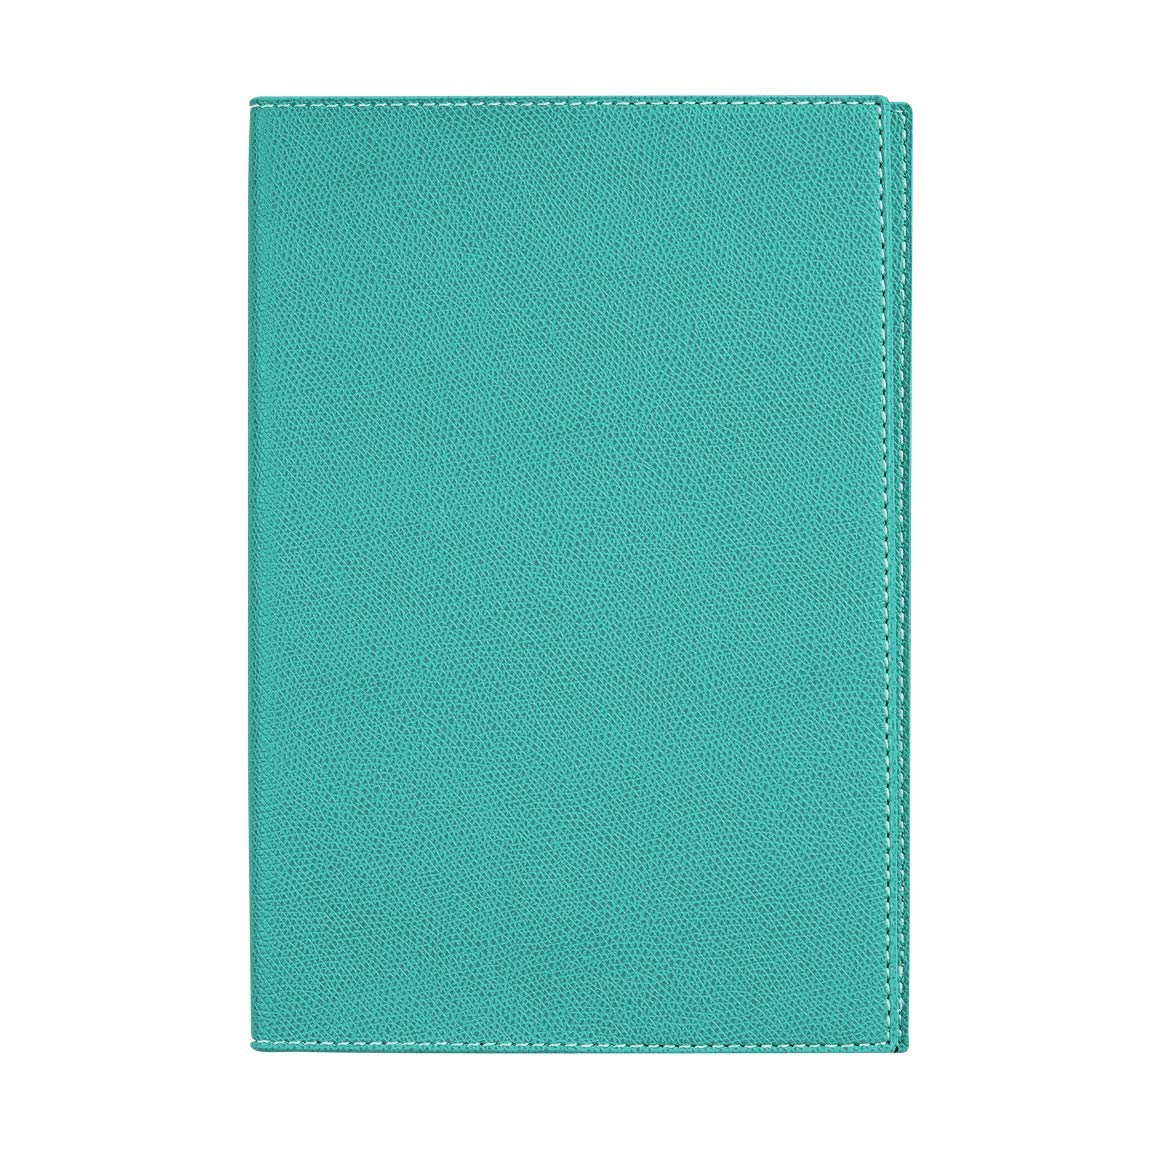 Quo Vadis 2019 Space 24 Yearly Planner, Club Cover, 6.25 by 9.38 inches, Turquoise B07DWD25GH  | Vogue